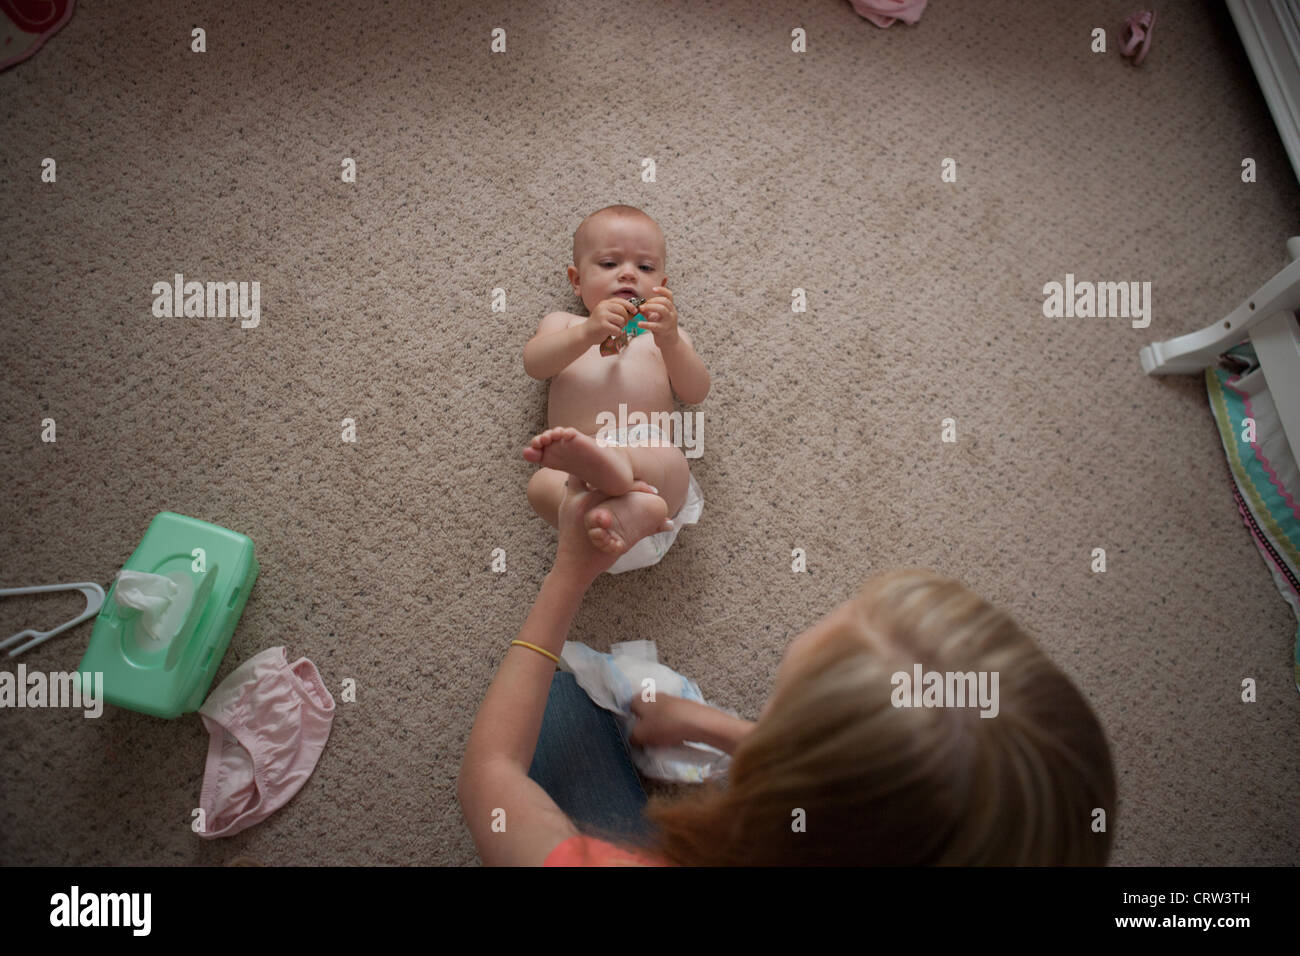 Older sister changing diaper for ten month old sister at home. - Stock Image